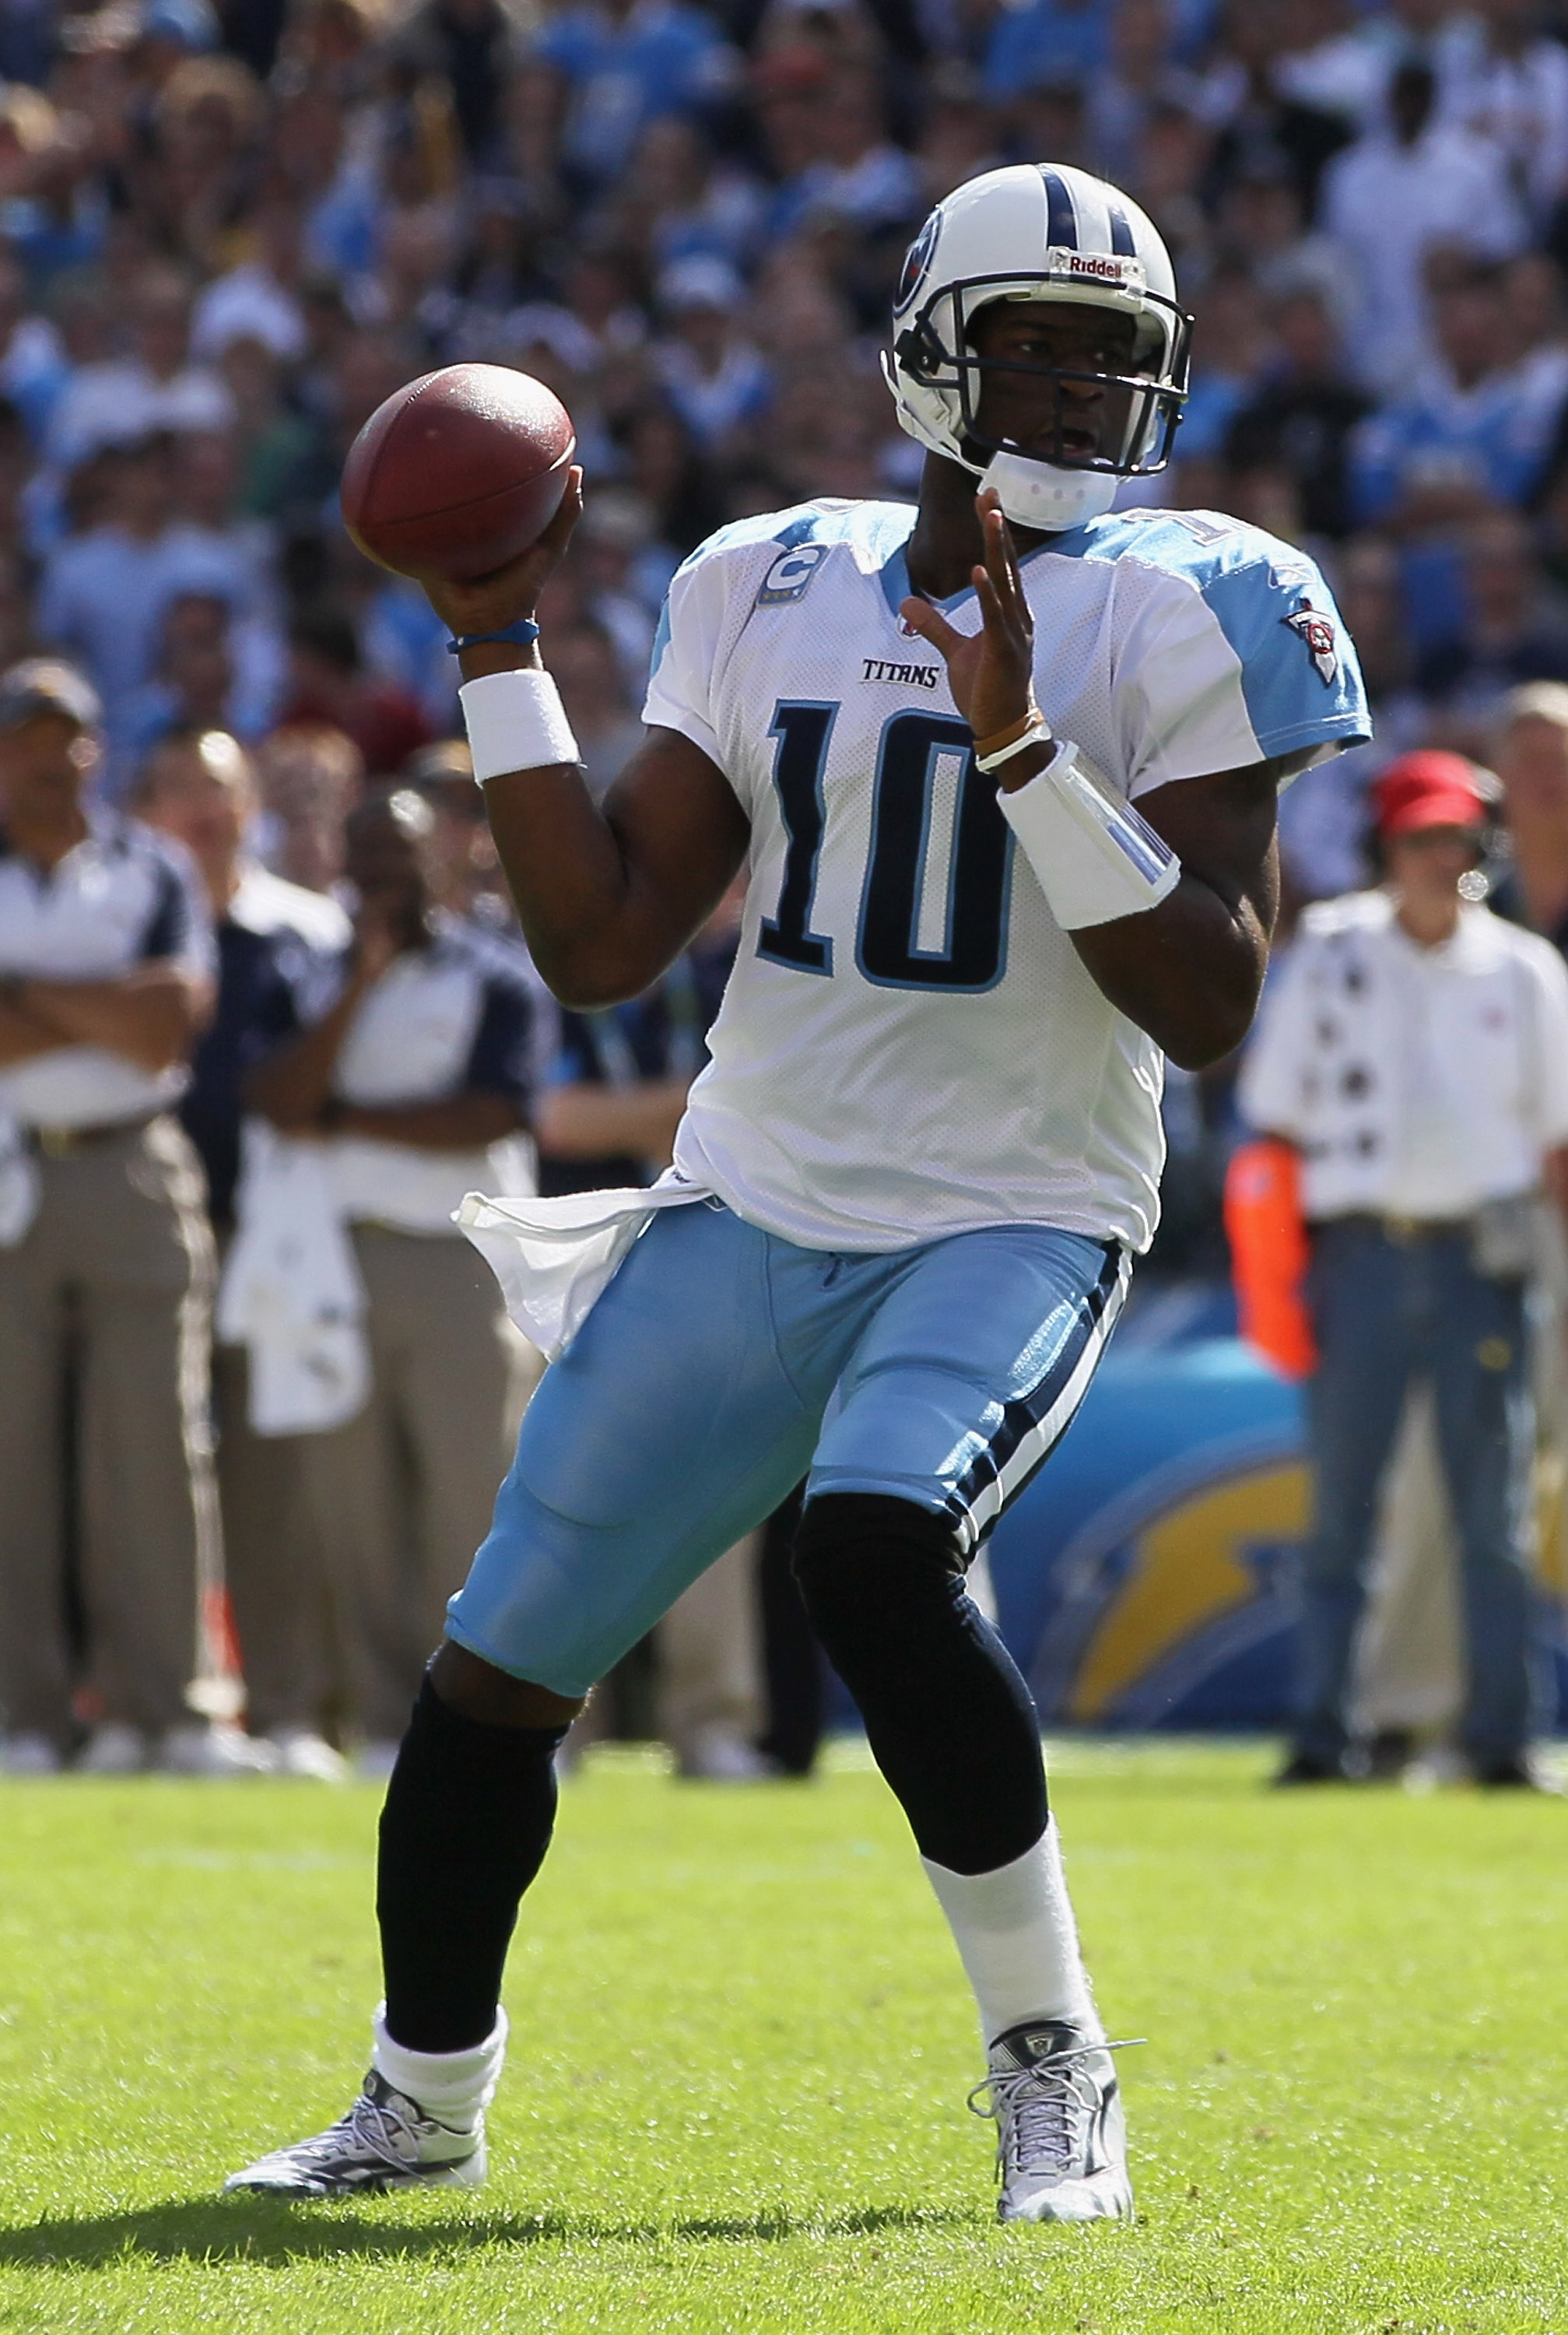 SAN DIEGO - OCTOBER 31:  Quarterback Vince Young #10 of the Tennessee Titans drops back to pass against the San Diego Chargers in the second quarter at Qualcomm Stadium on October 31, 2010 in San Diego, California. The Chargers defeated the Titans 33-25.